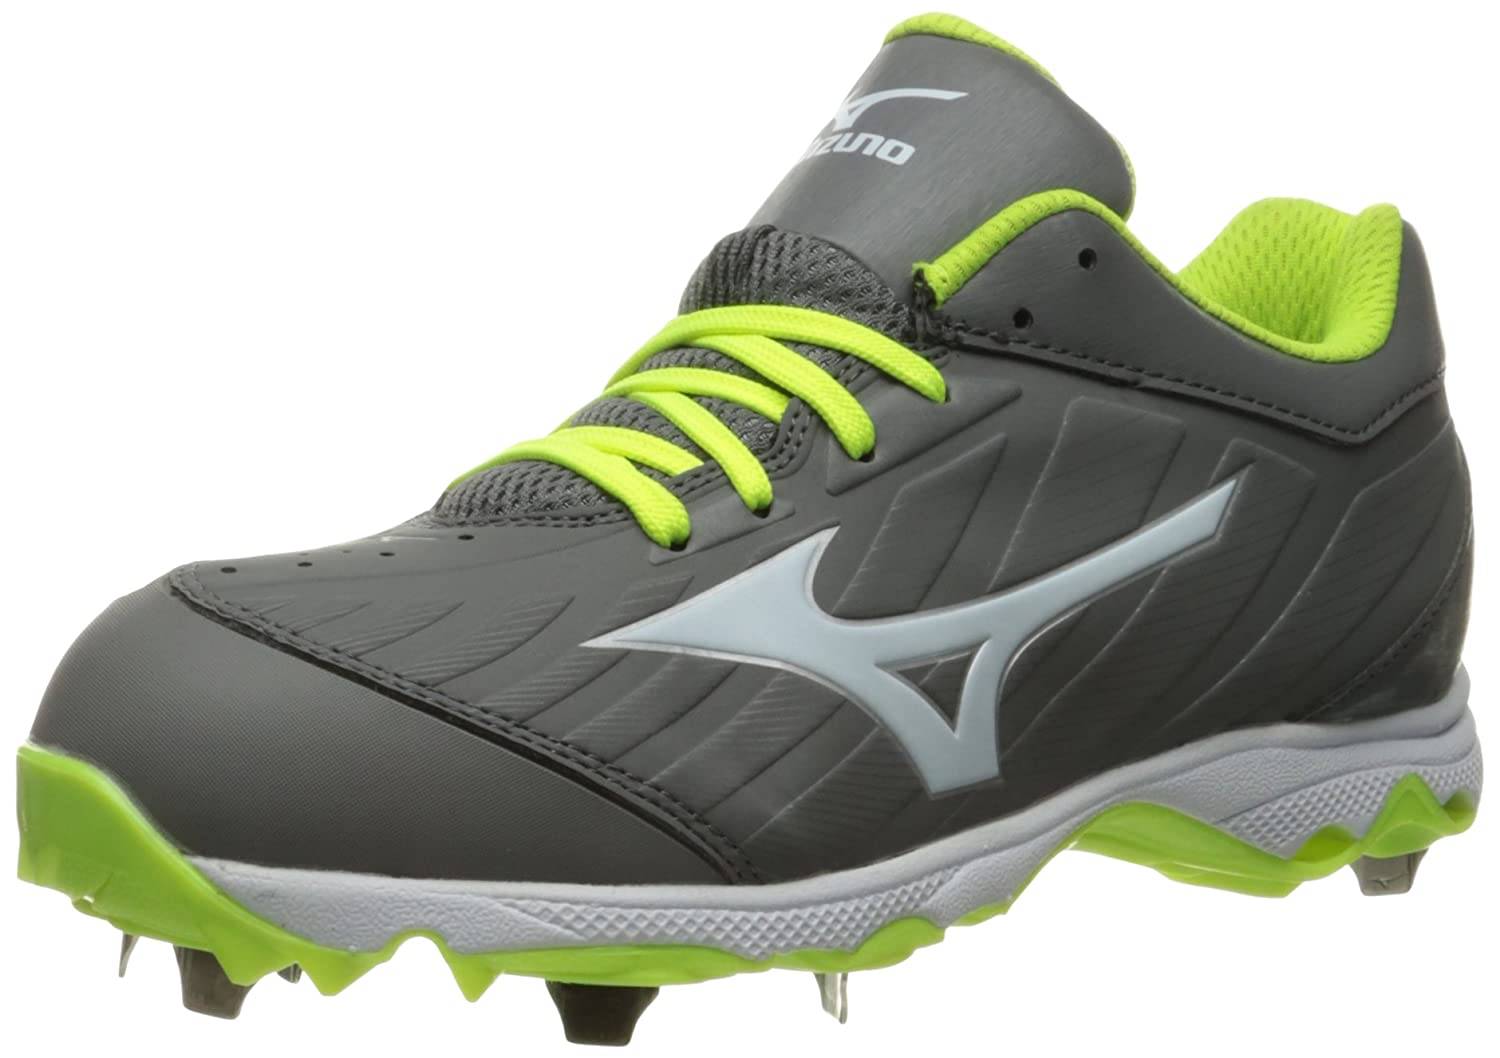 Mizuno Women's 9-Spike Advanced Sweep 3 Softball Shoe B01JZ015IQ 11 W US|Grey/White